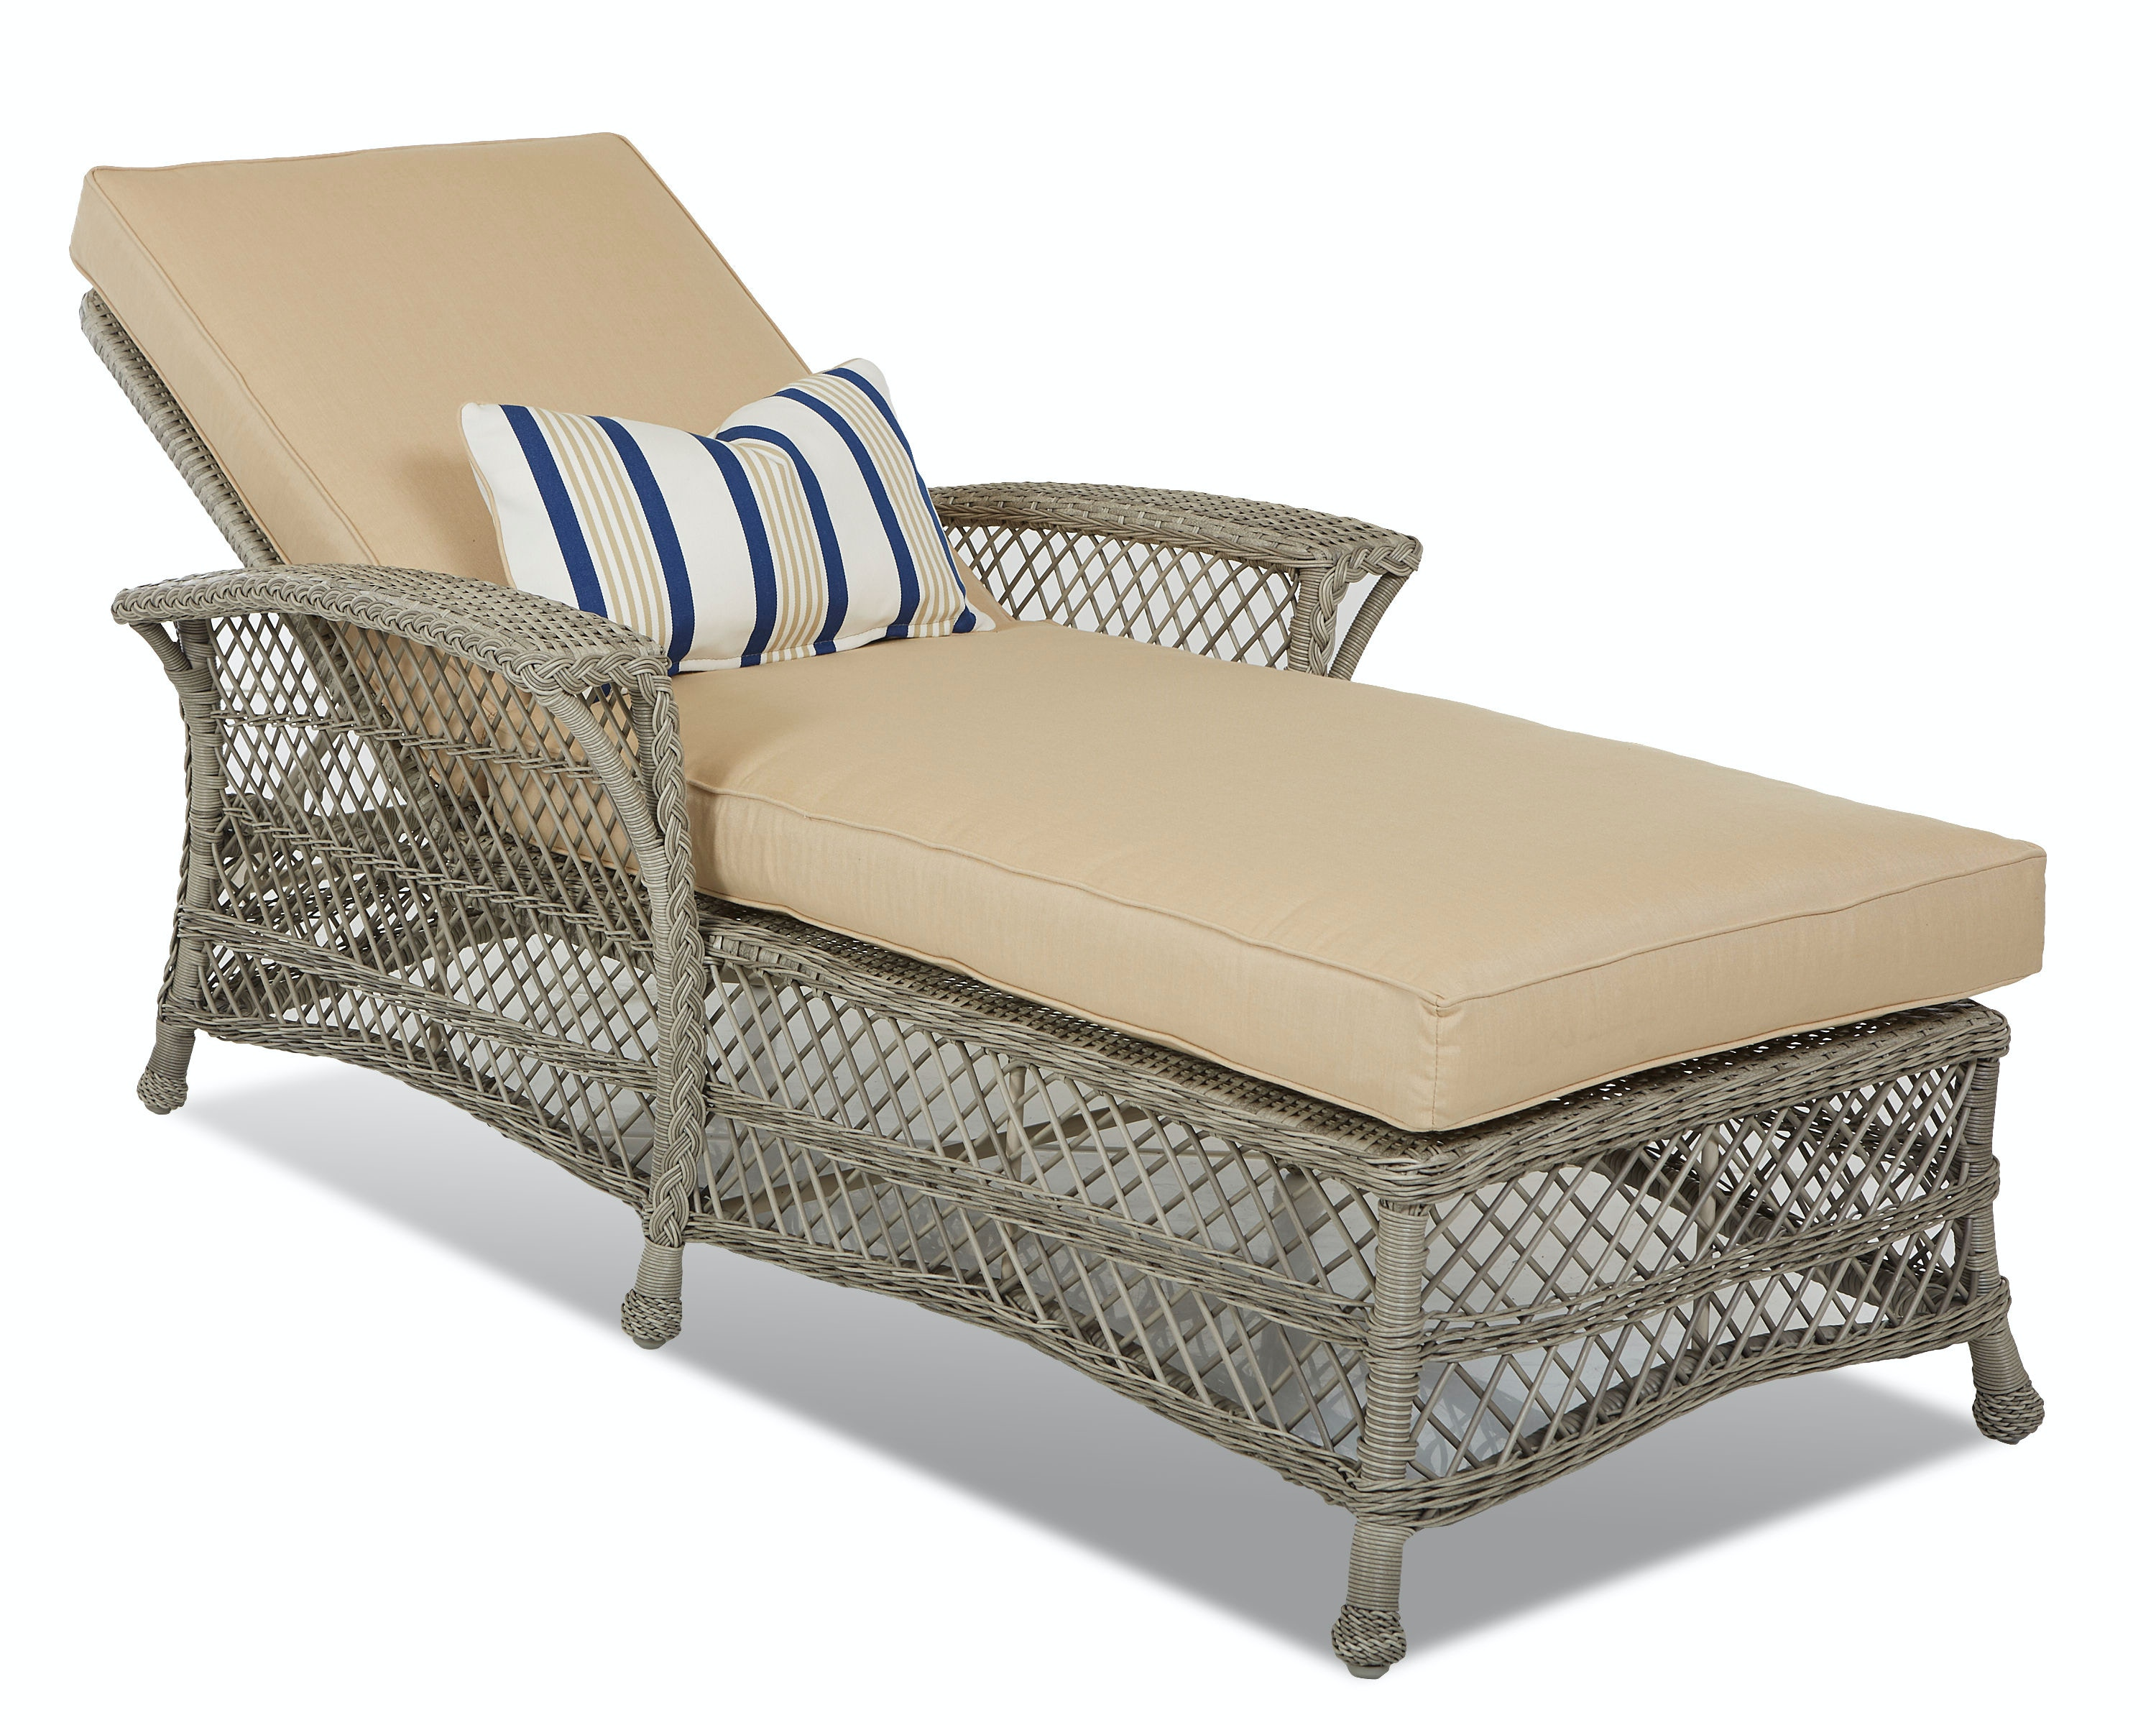 Klaussner Outdoor Outdoor/Patio Willow Chaise W1200 CHASE - High Country Furniture u0026 Design ...